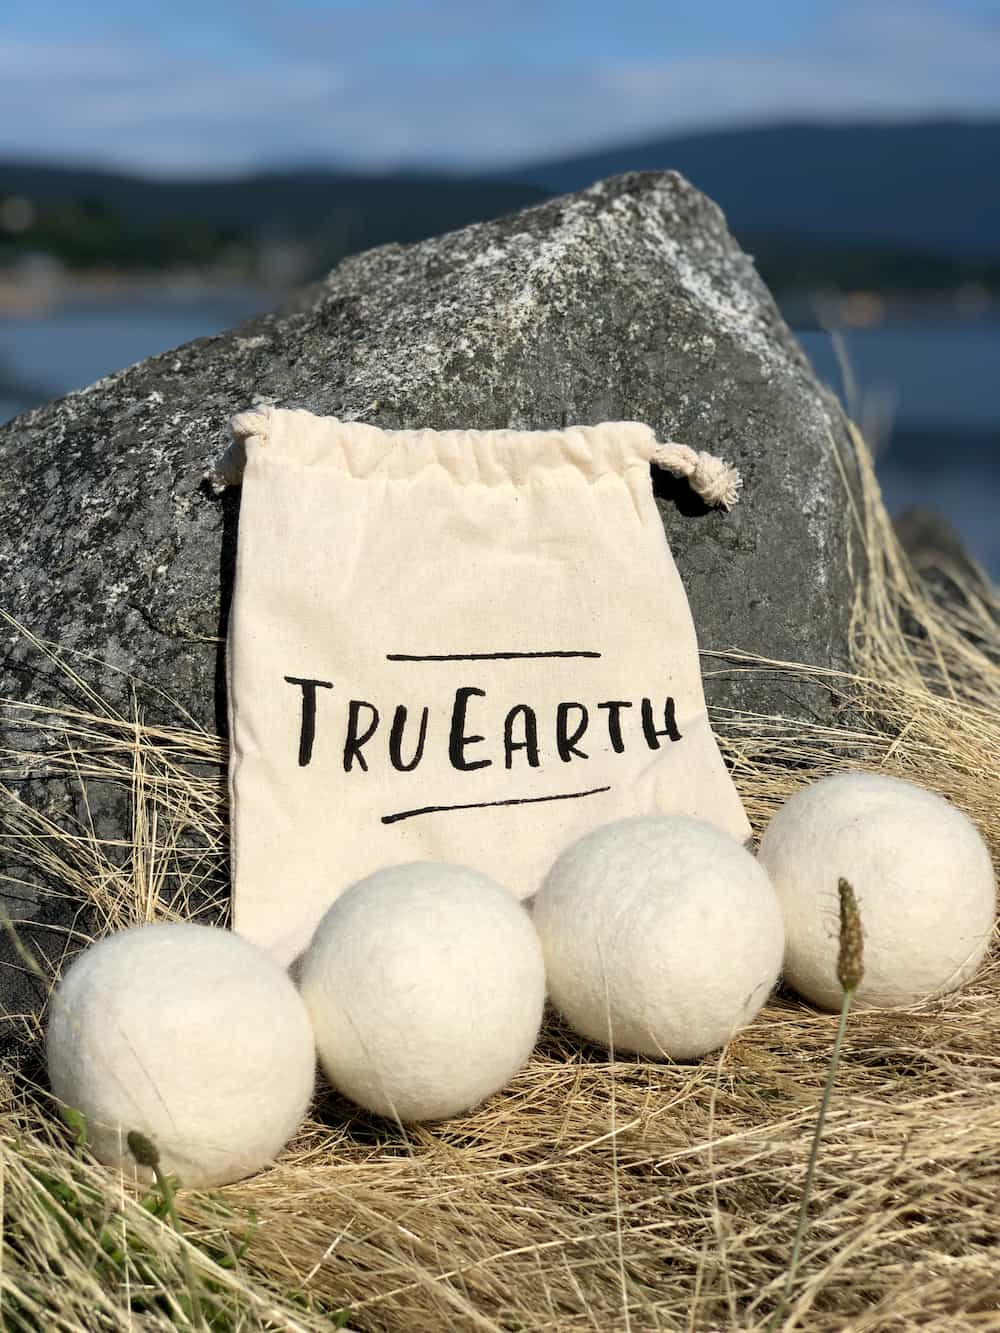 Tru Earth Dryer Balls - 4 pack with cotton bag